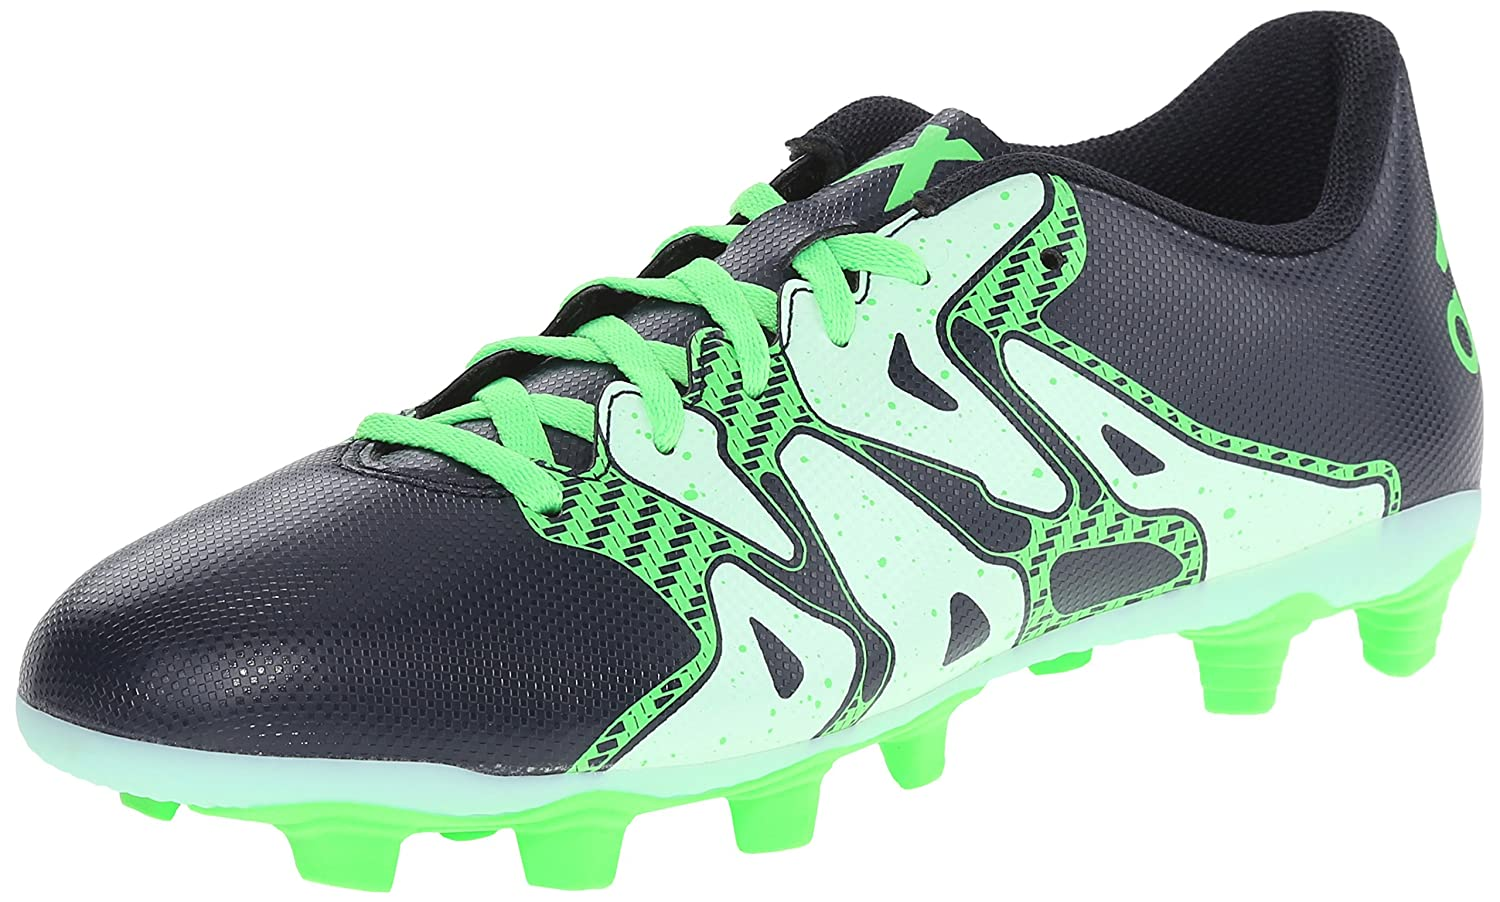 adidas Performance Women's X 15.4 FXG W Soccer Cleat adidas Team Footwear X 15.4 FxG W-W